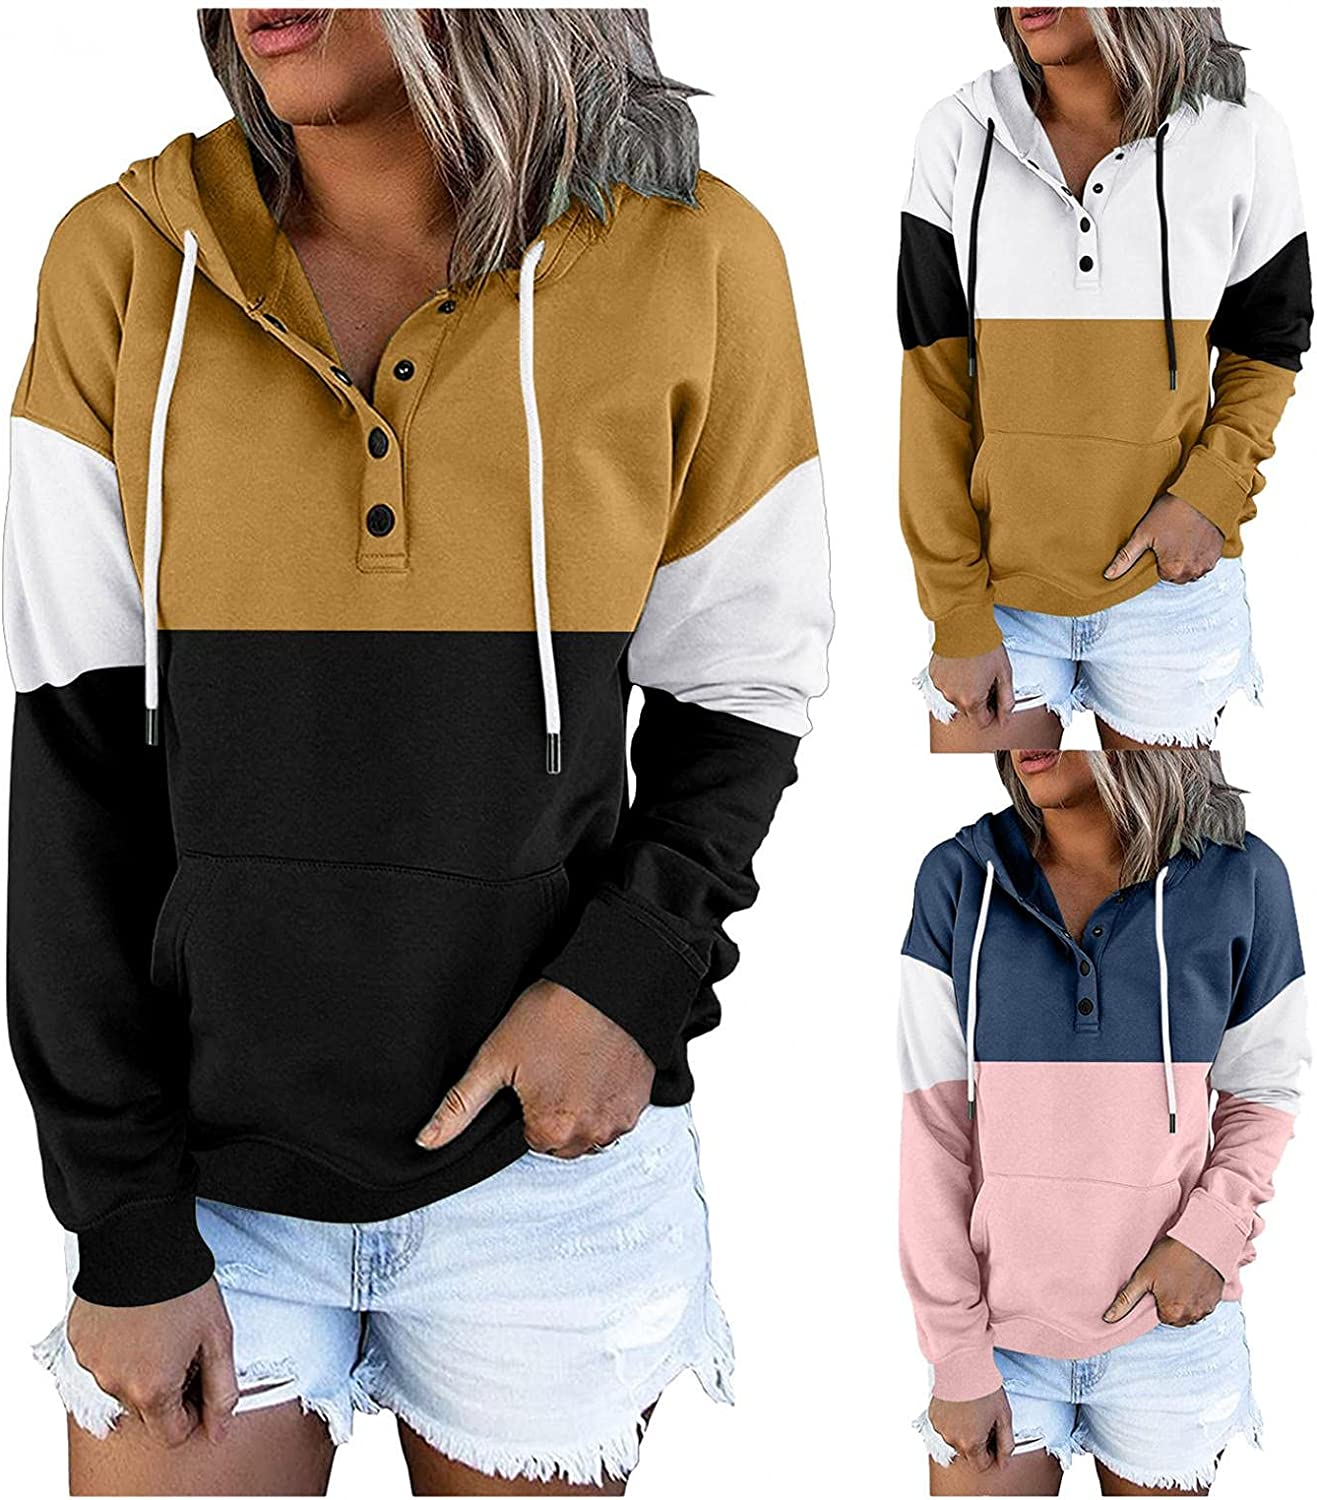 Hoodies for Women with Designs Aesthetic, Womens Fashion Workout Tops Button Collar Long Sleeve Sweatshirts Pullover